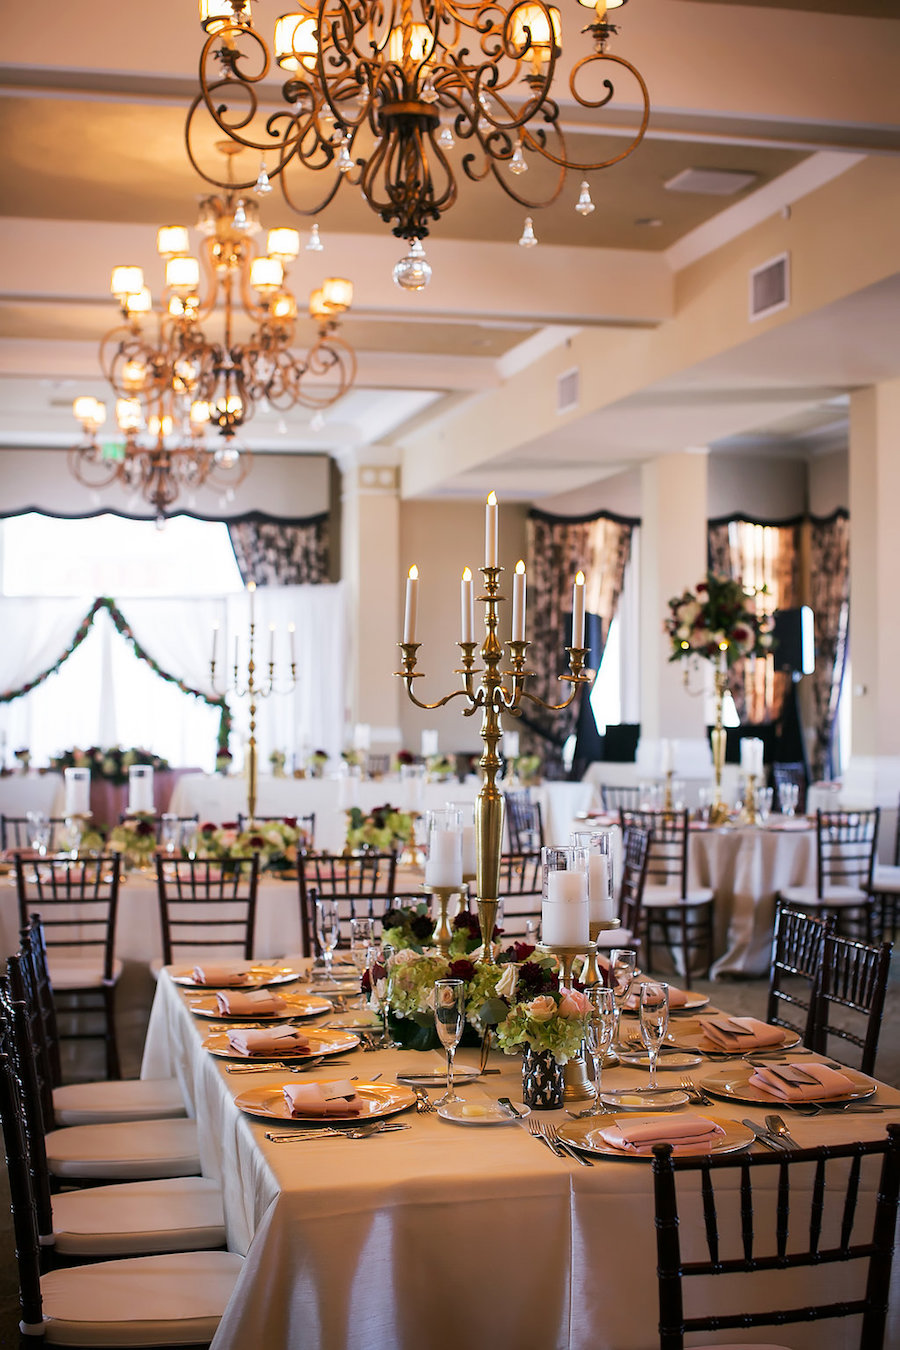 Don CeSar Hotel, St Pete Florida Wedding Reception with Feasting Tables and Brown Chiavari Chairs with Gold Candelabras   Limelight Photography